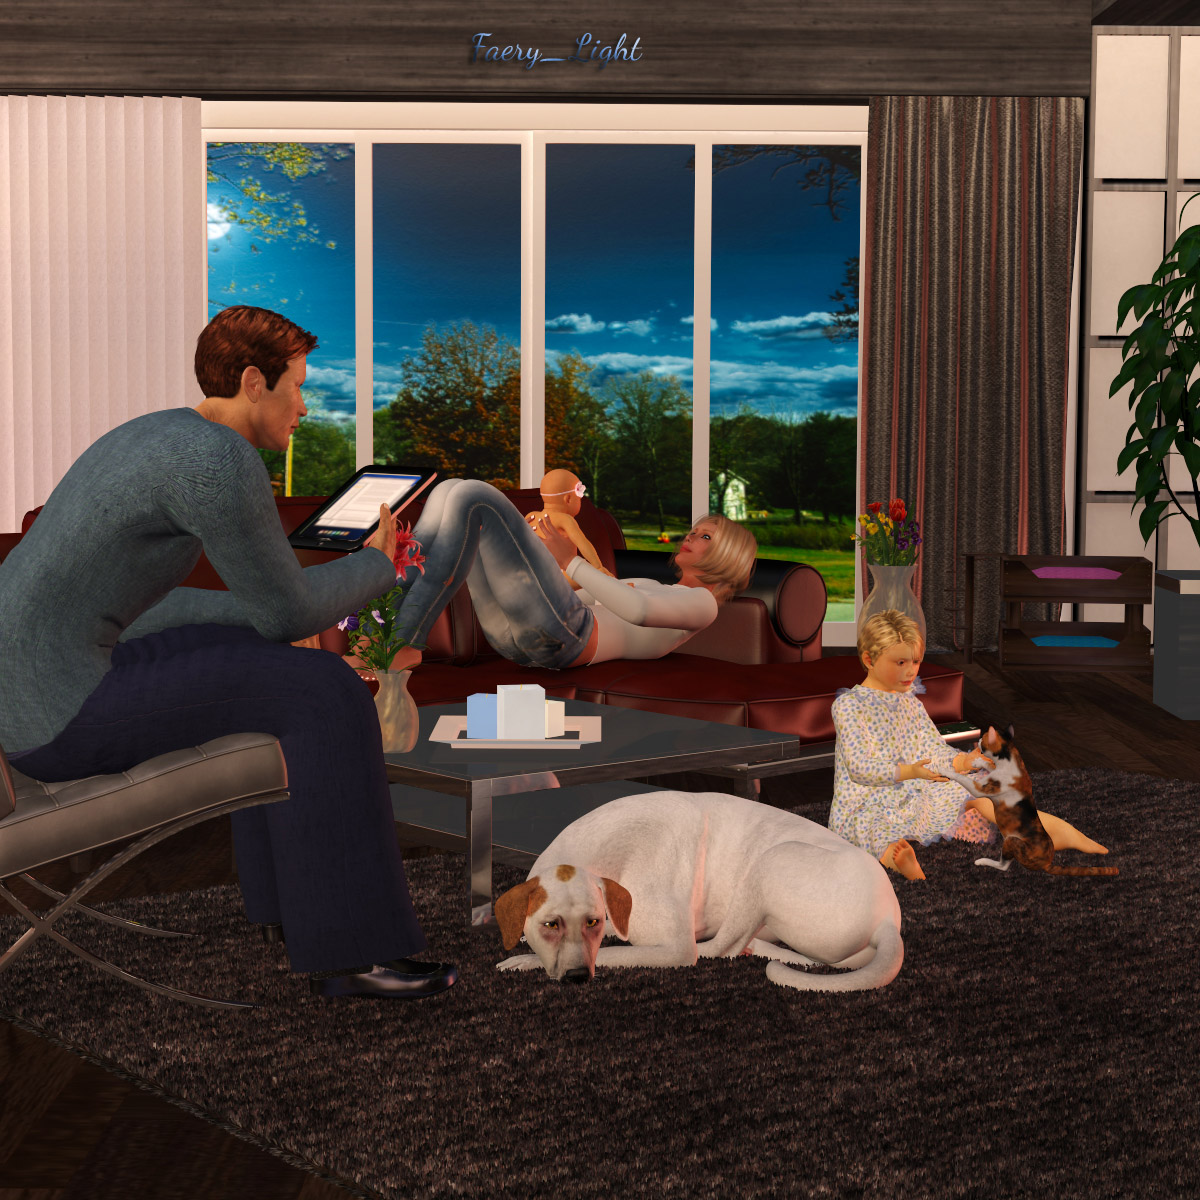 Stay Home - Spread Hope-Family Time-2.jpg